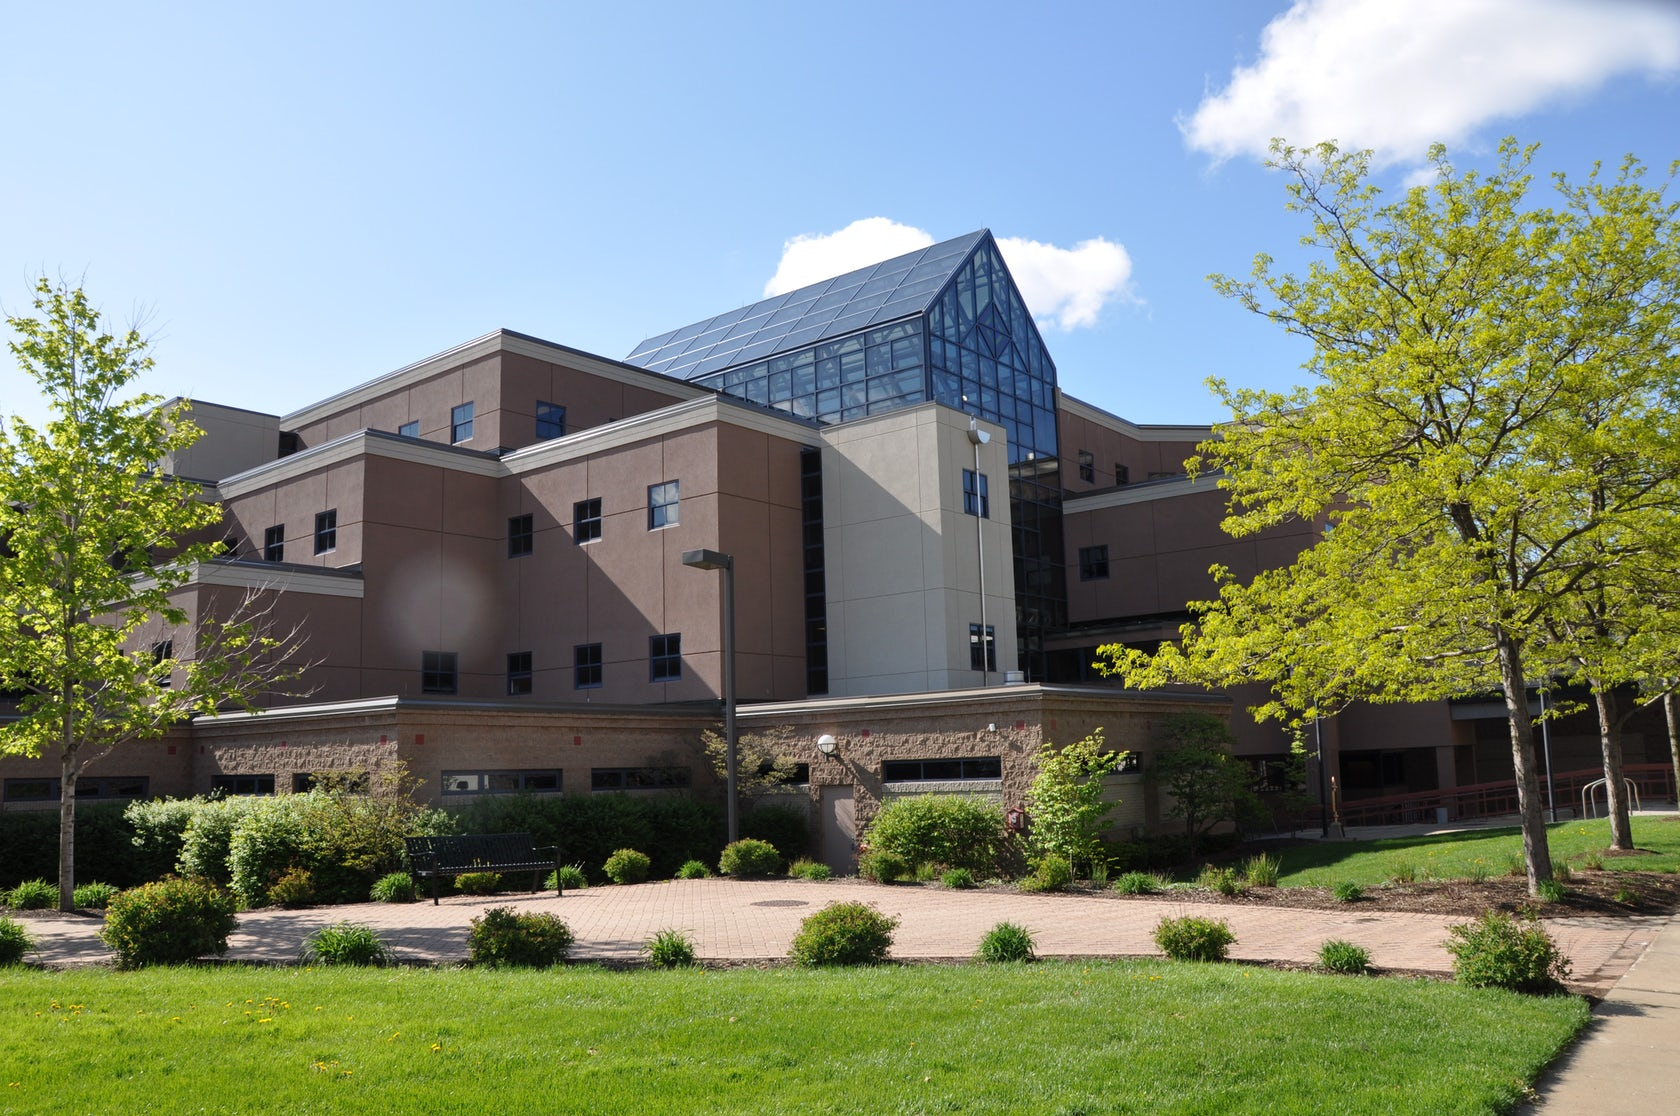 The University Of Akron Cba Roof And Exterior Wall